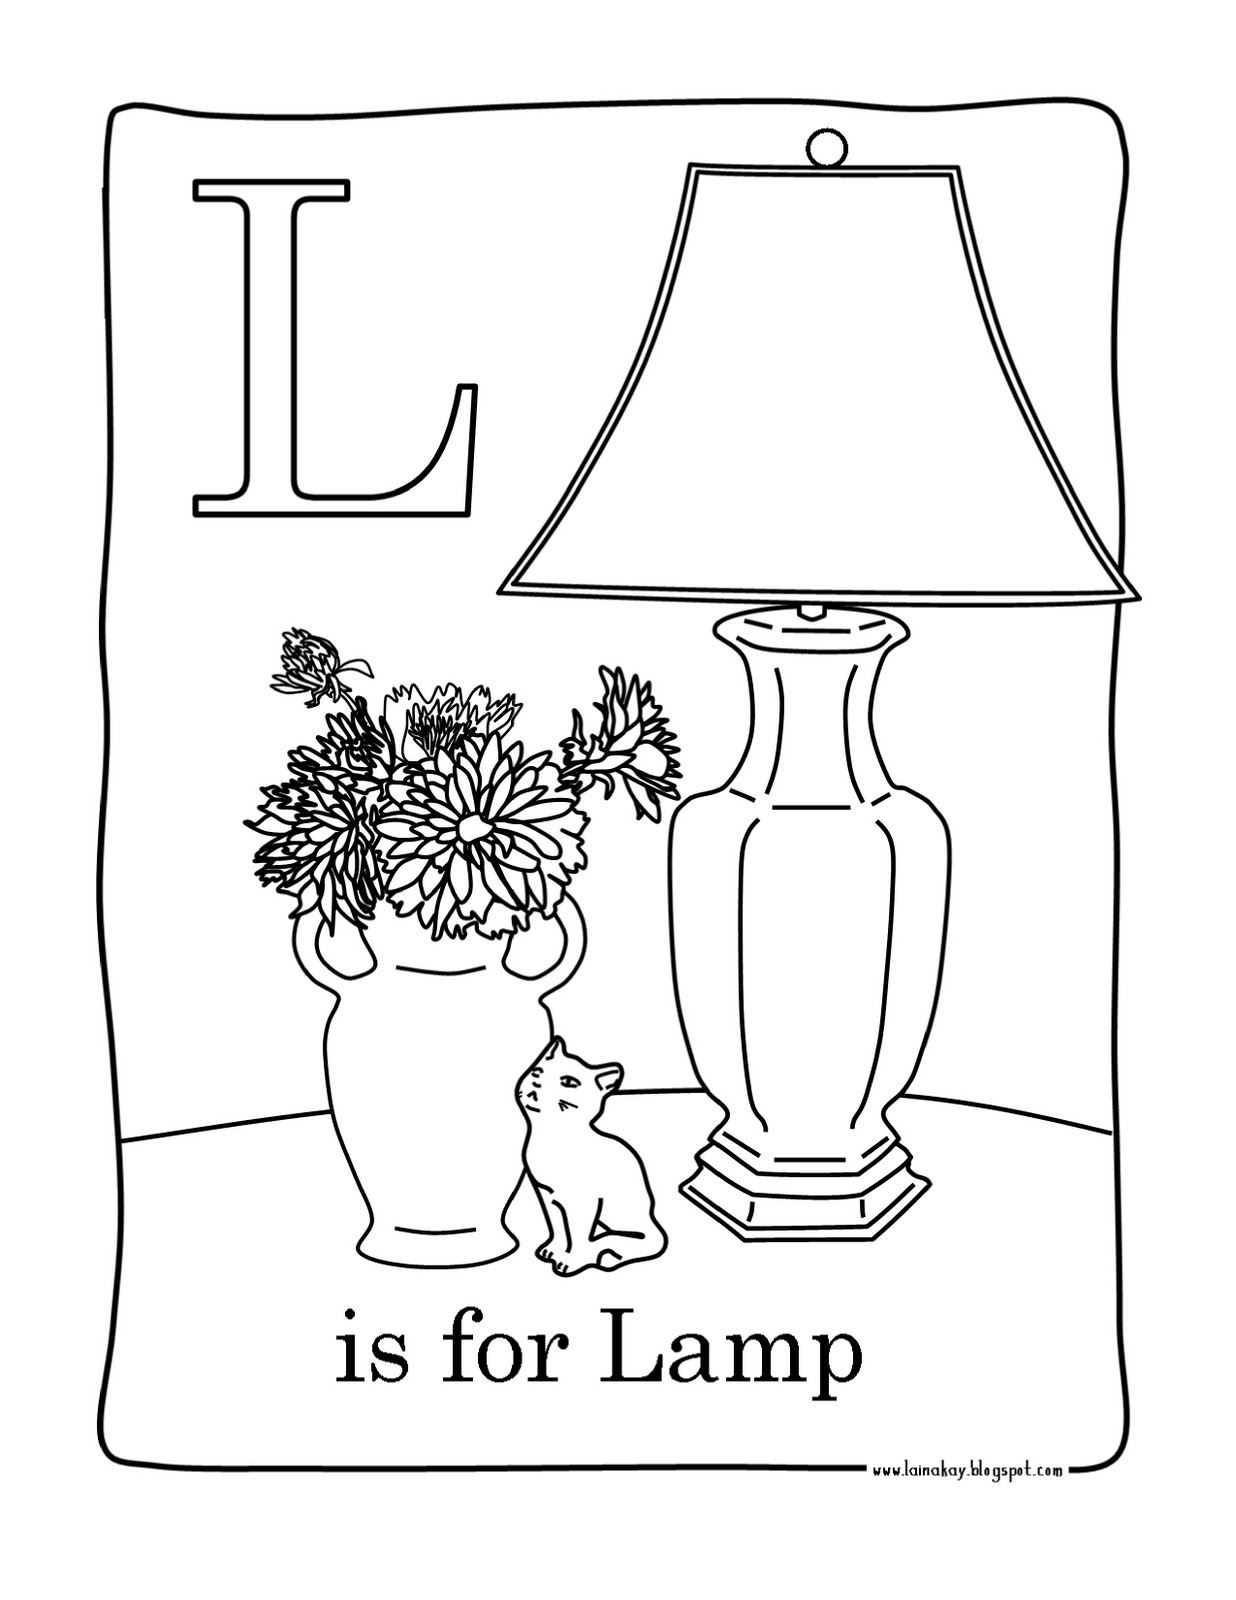 goodness gracious l is for lamp